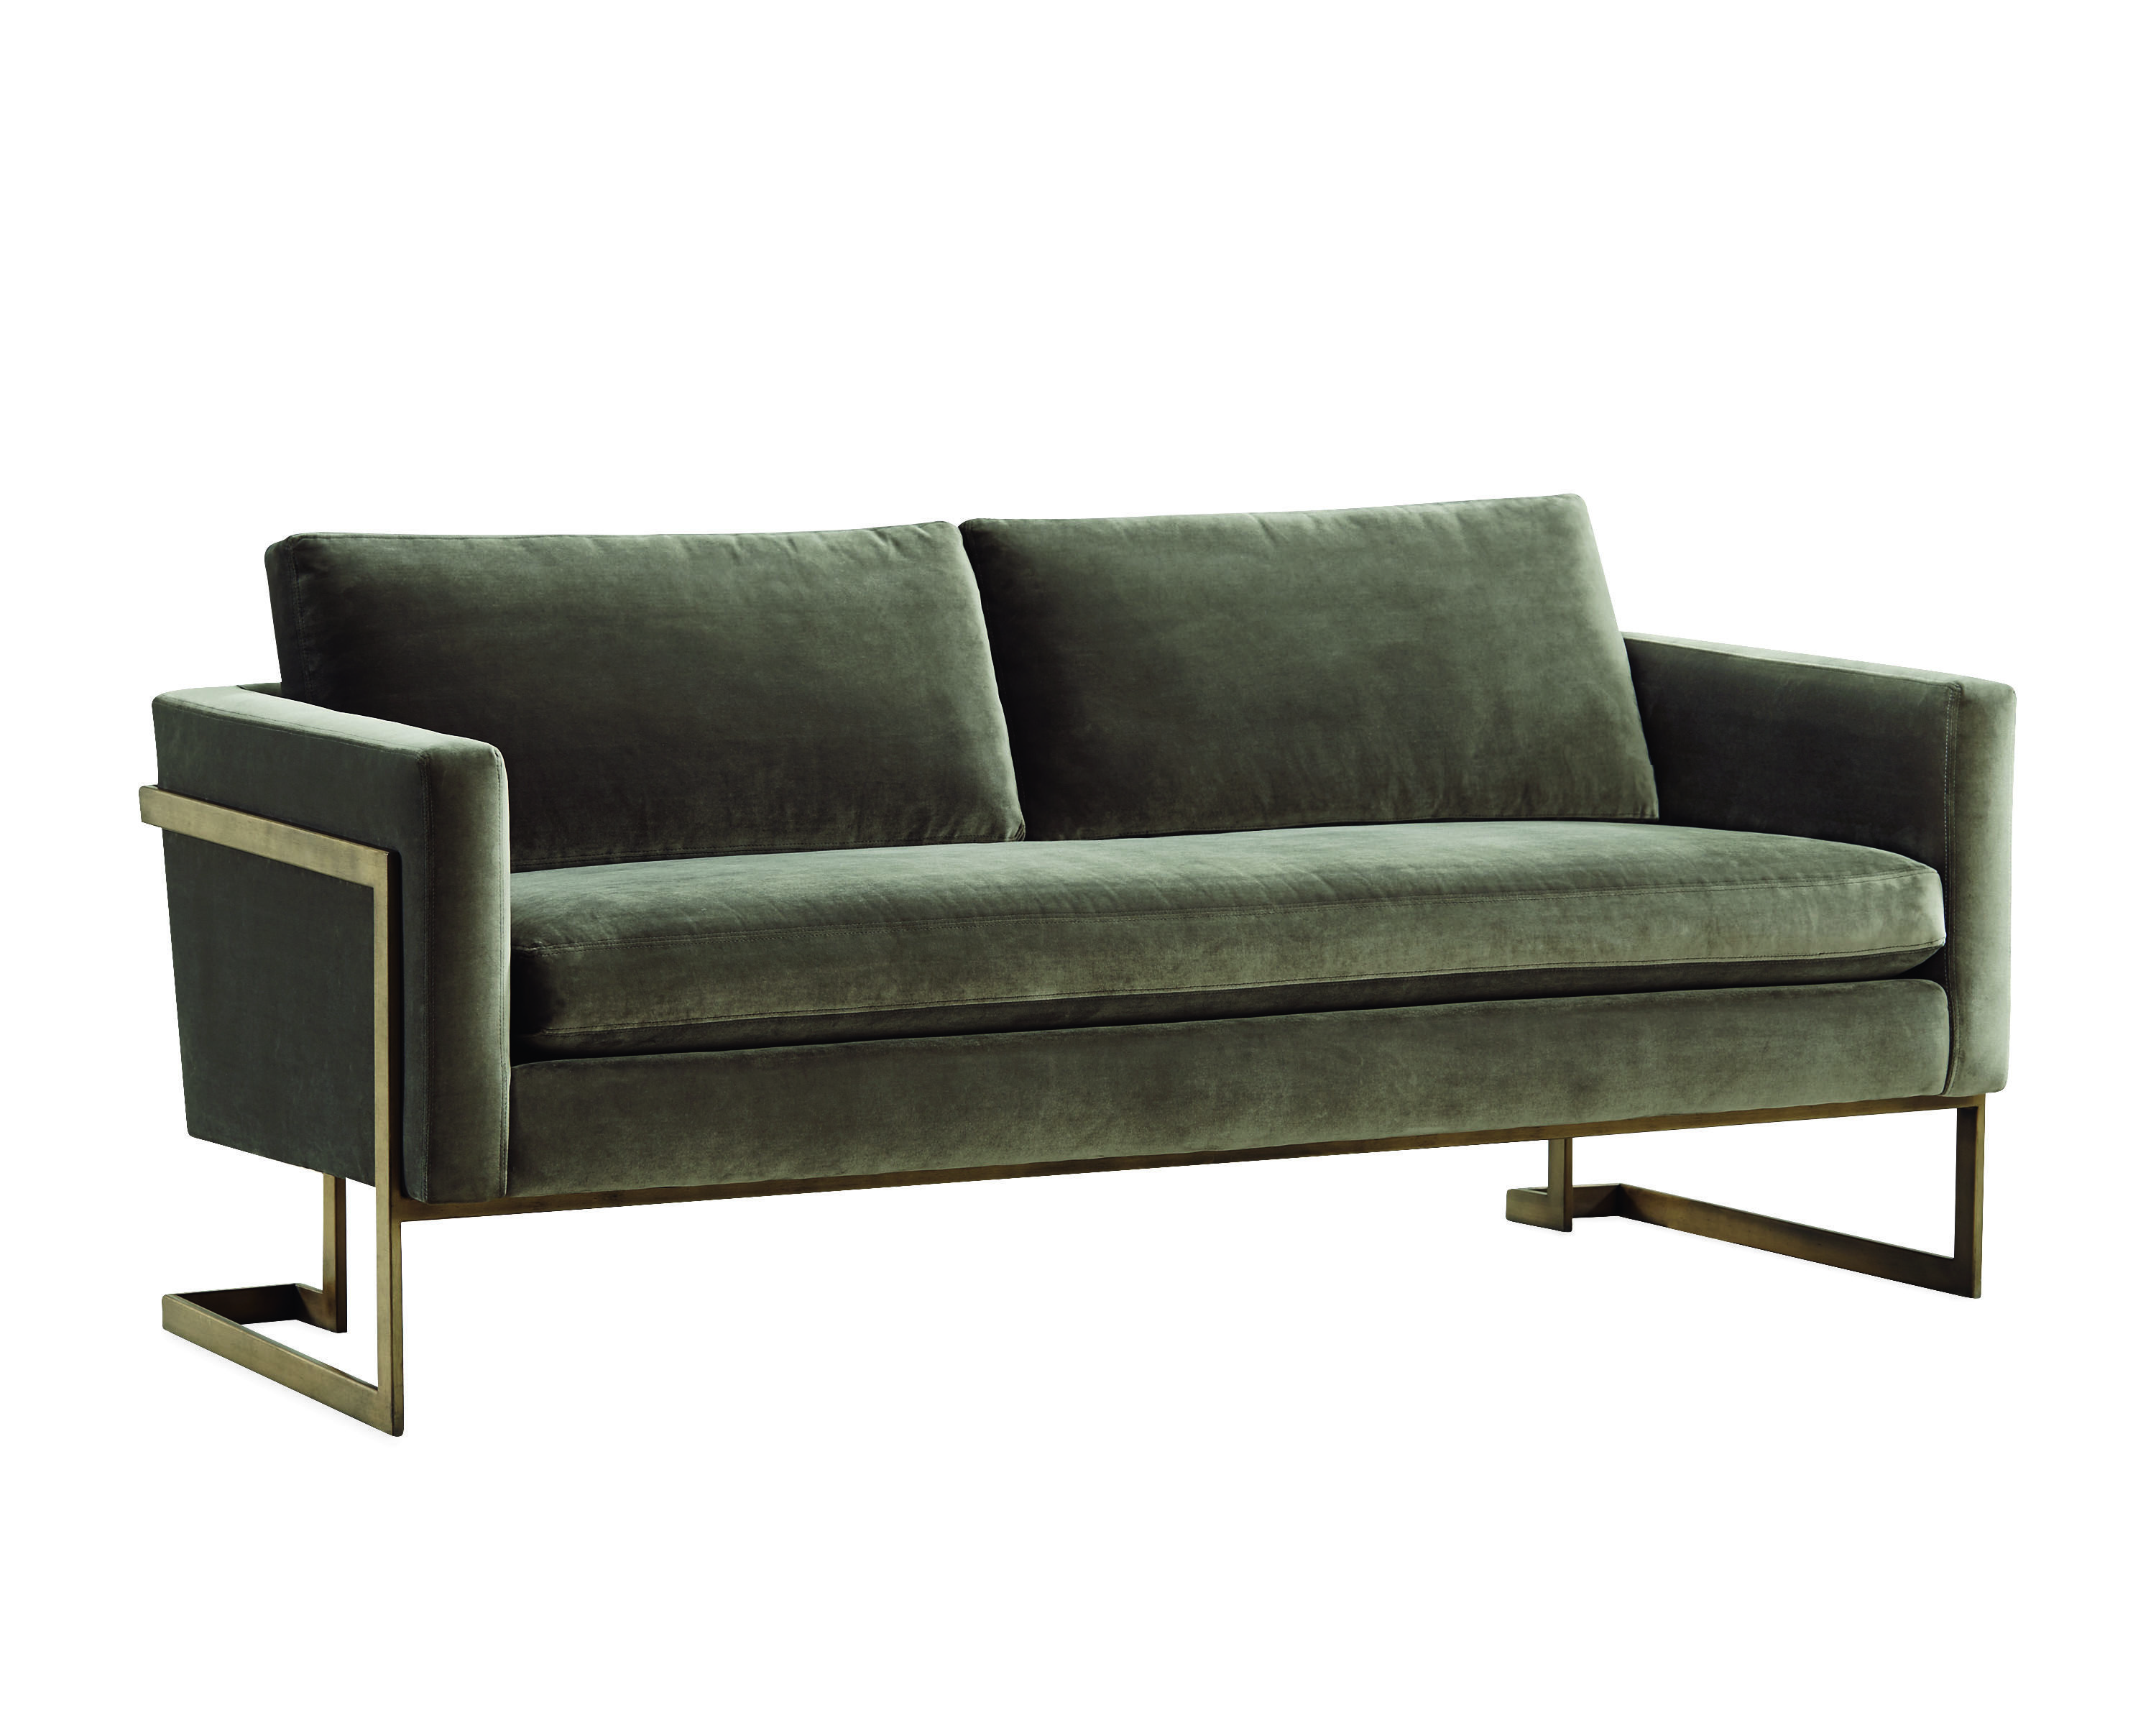 Lee Industries Apartment Sofa In Austin Pewter